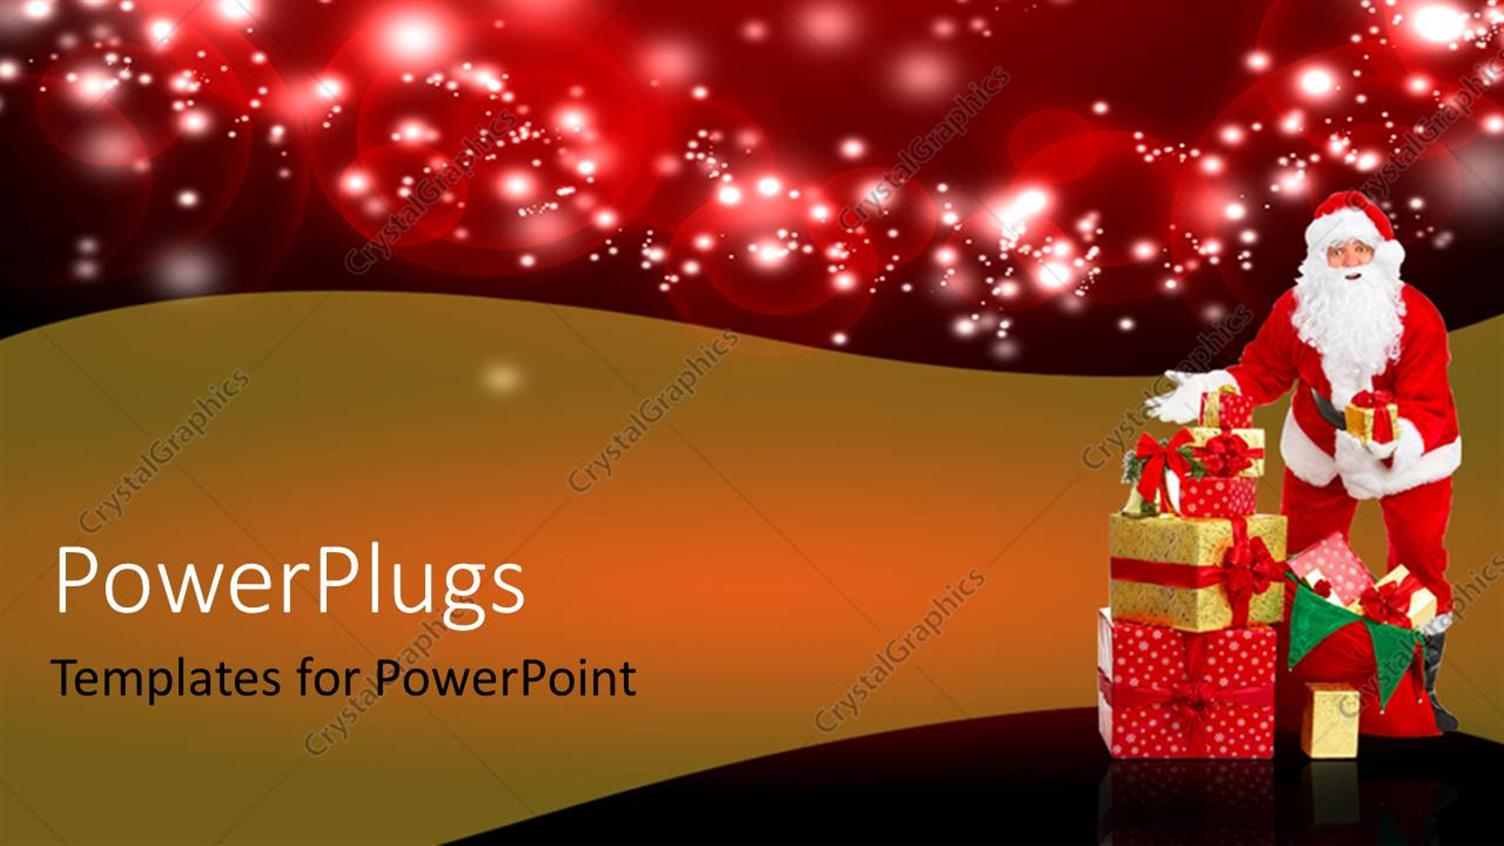 PowerPoint Template Displaying a Santa Clause Standing Beside a Stack of Gifts